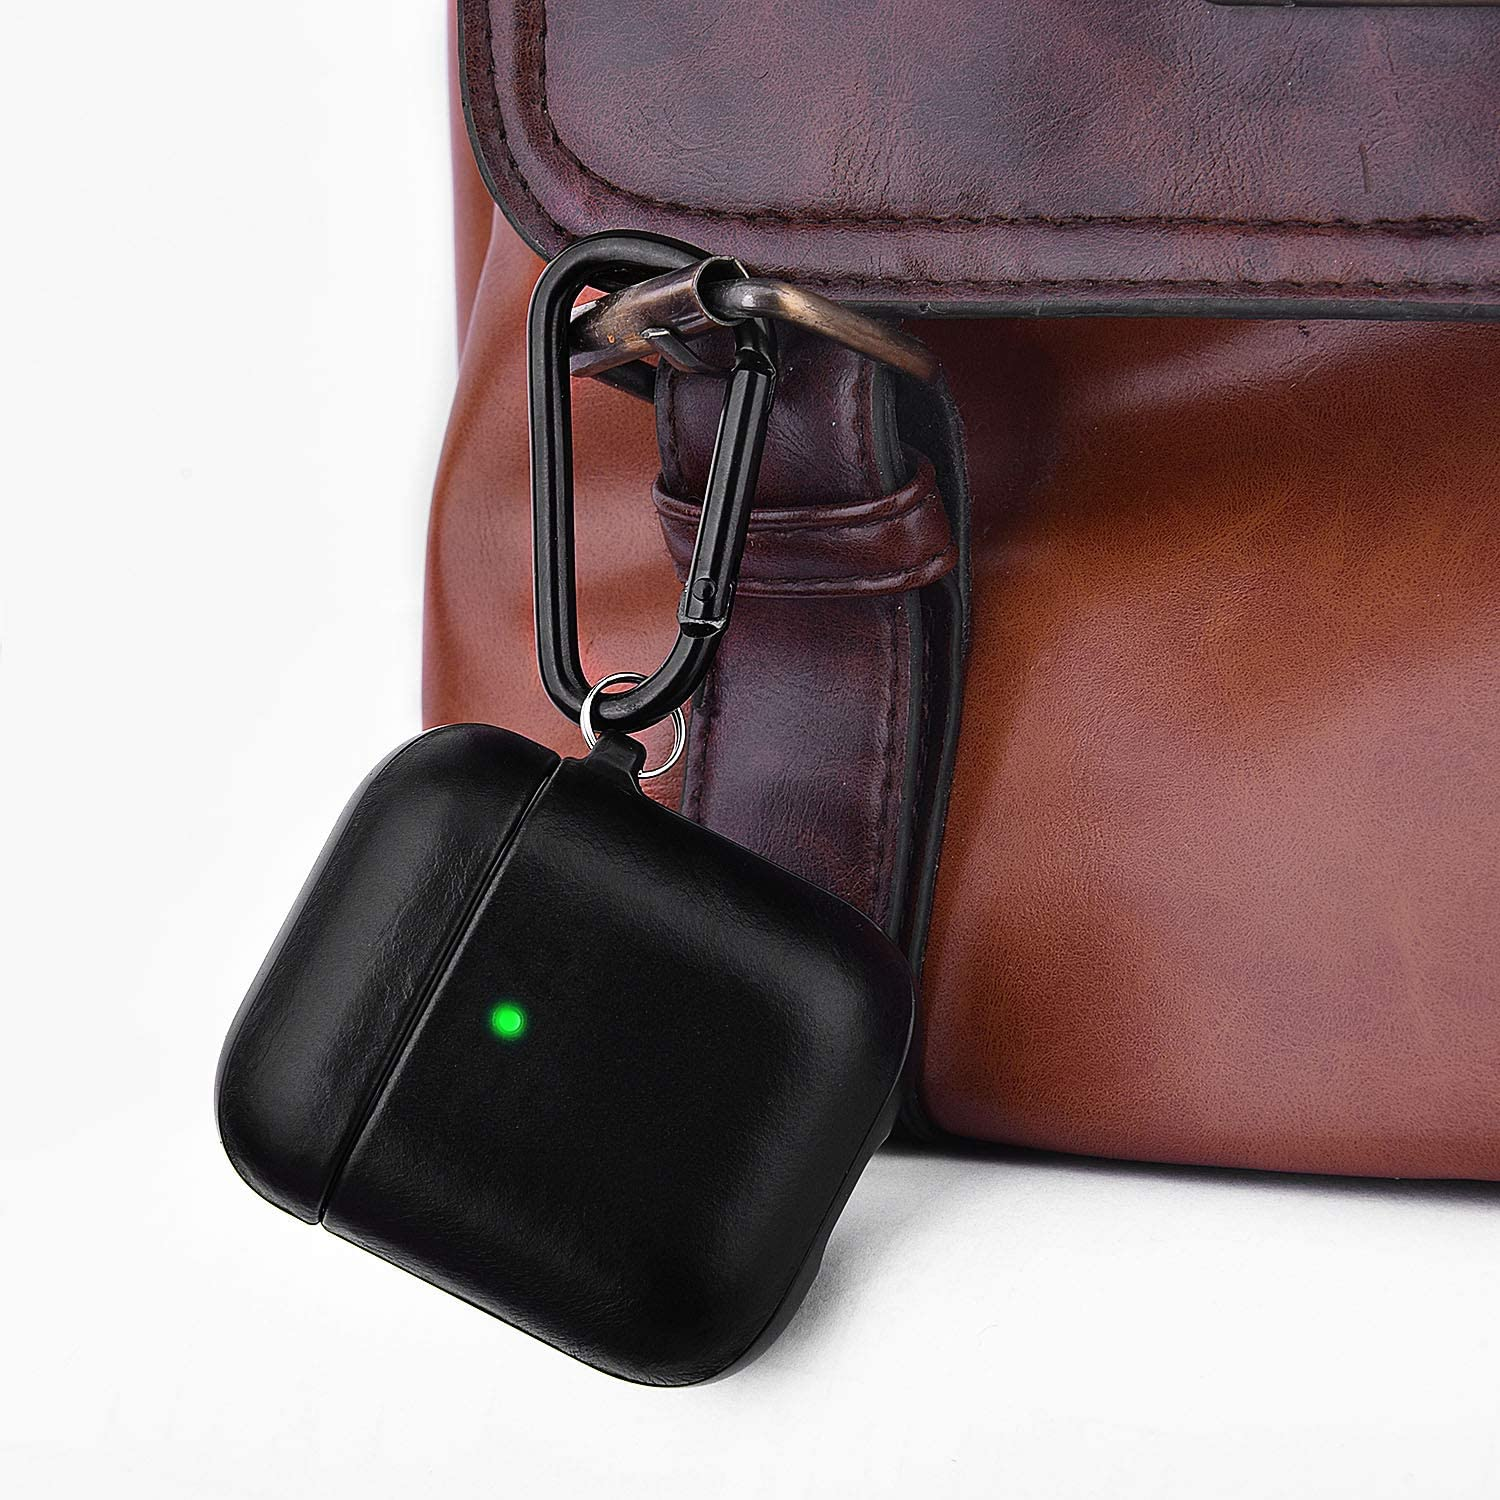 Front LED Visible V-MORO Compatible with Airpods Case Genuine Leather Case for Airpods 2 /& 1 Protective Cover Skin Brown